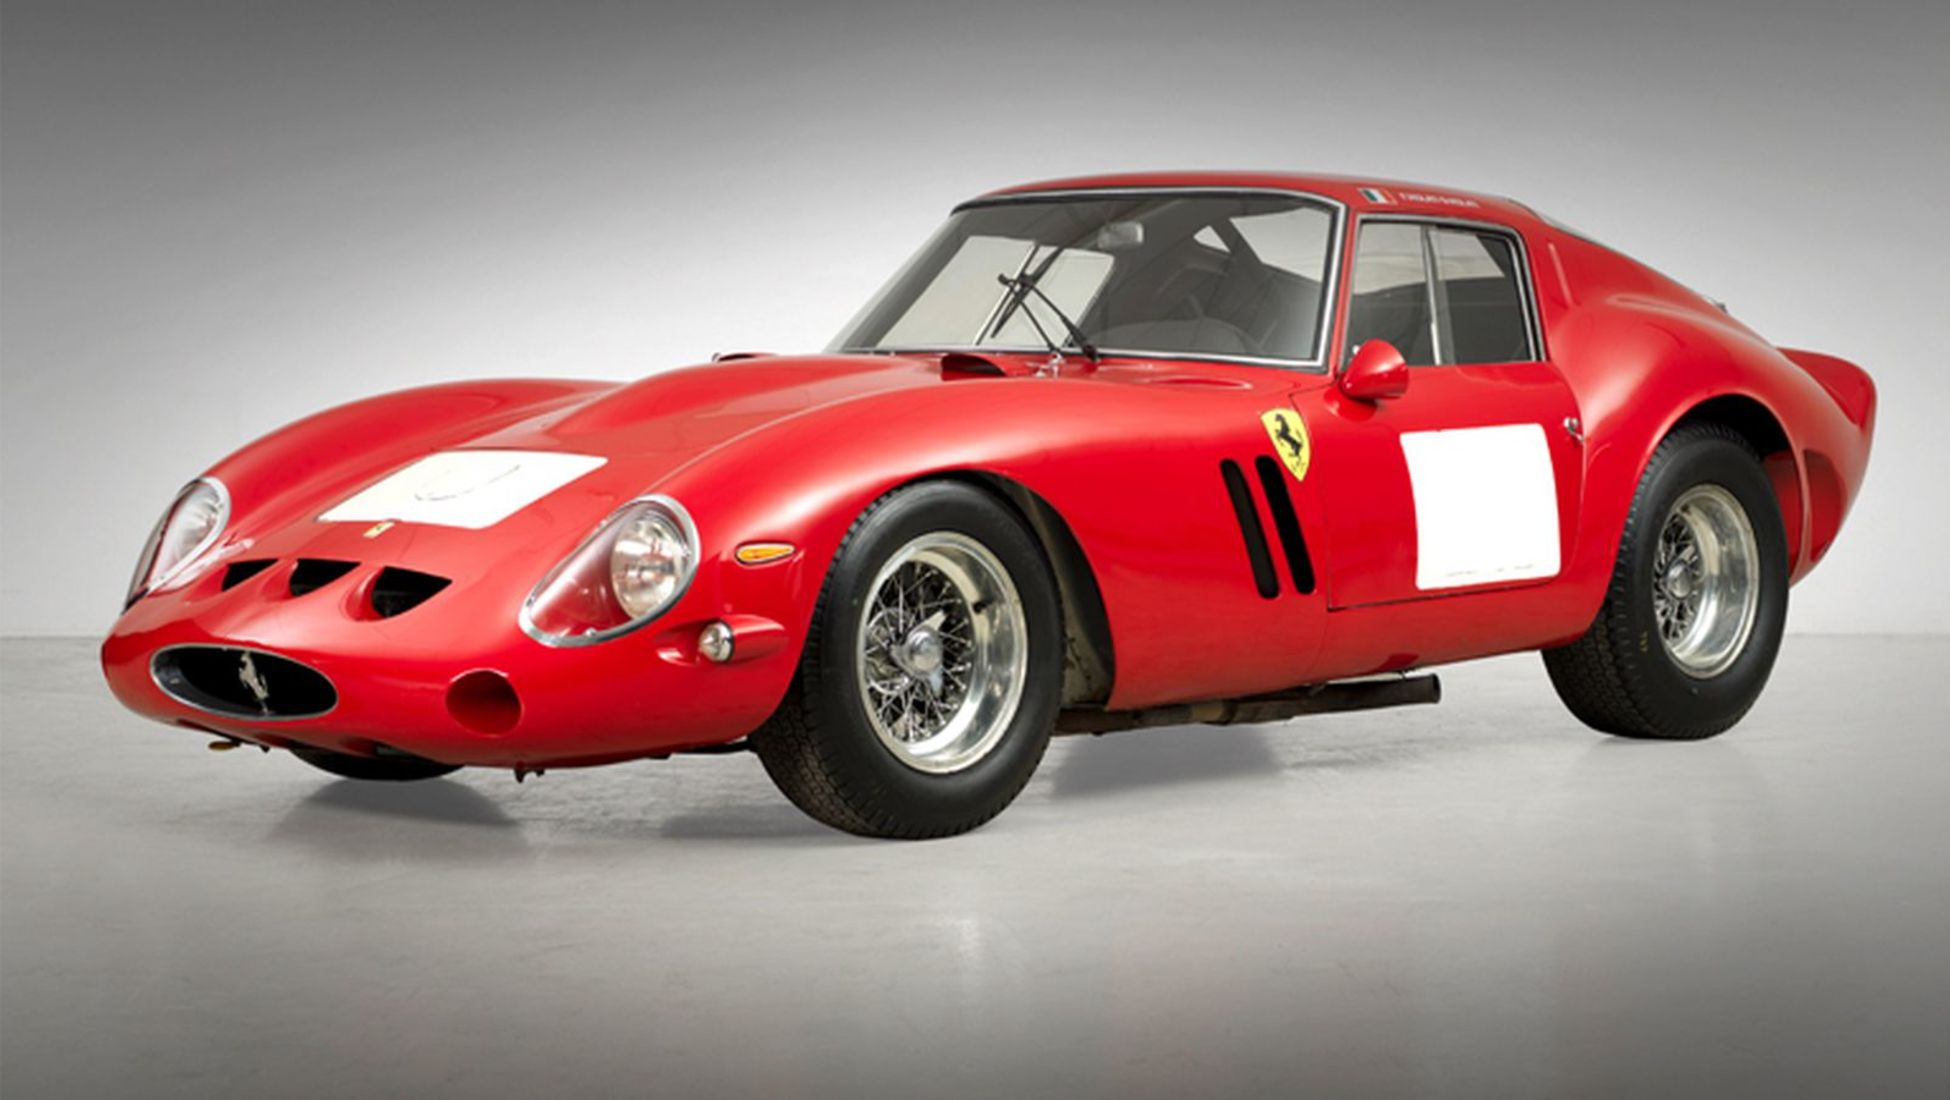 5 of the Most Expensive Classic Cars Sold at Auction